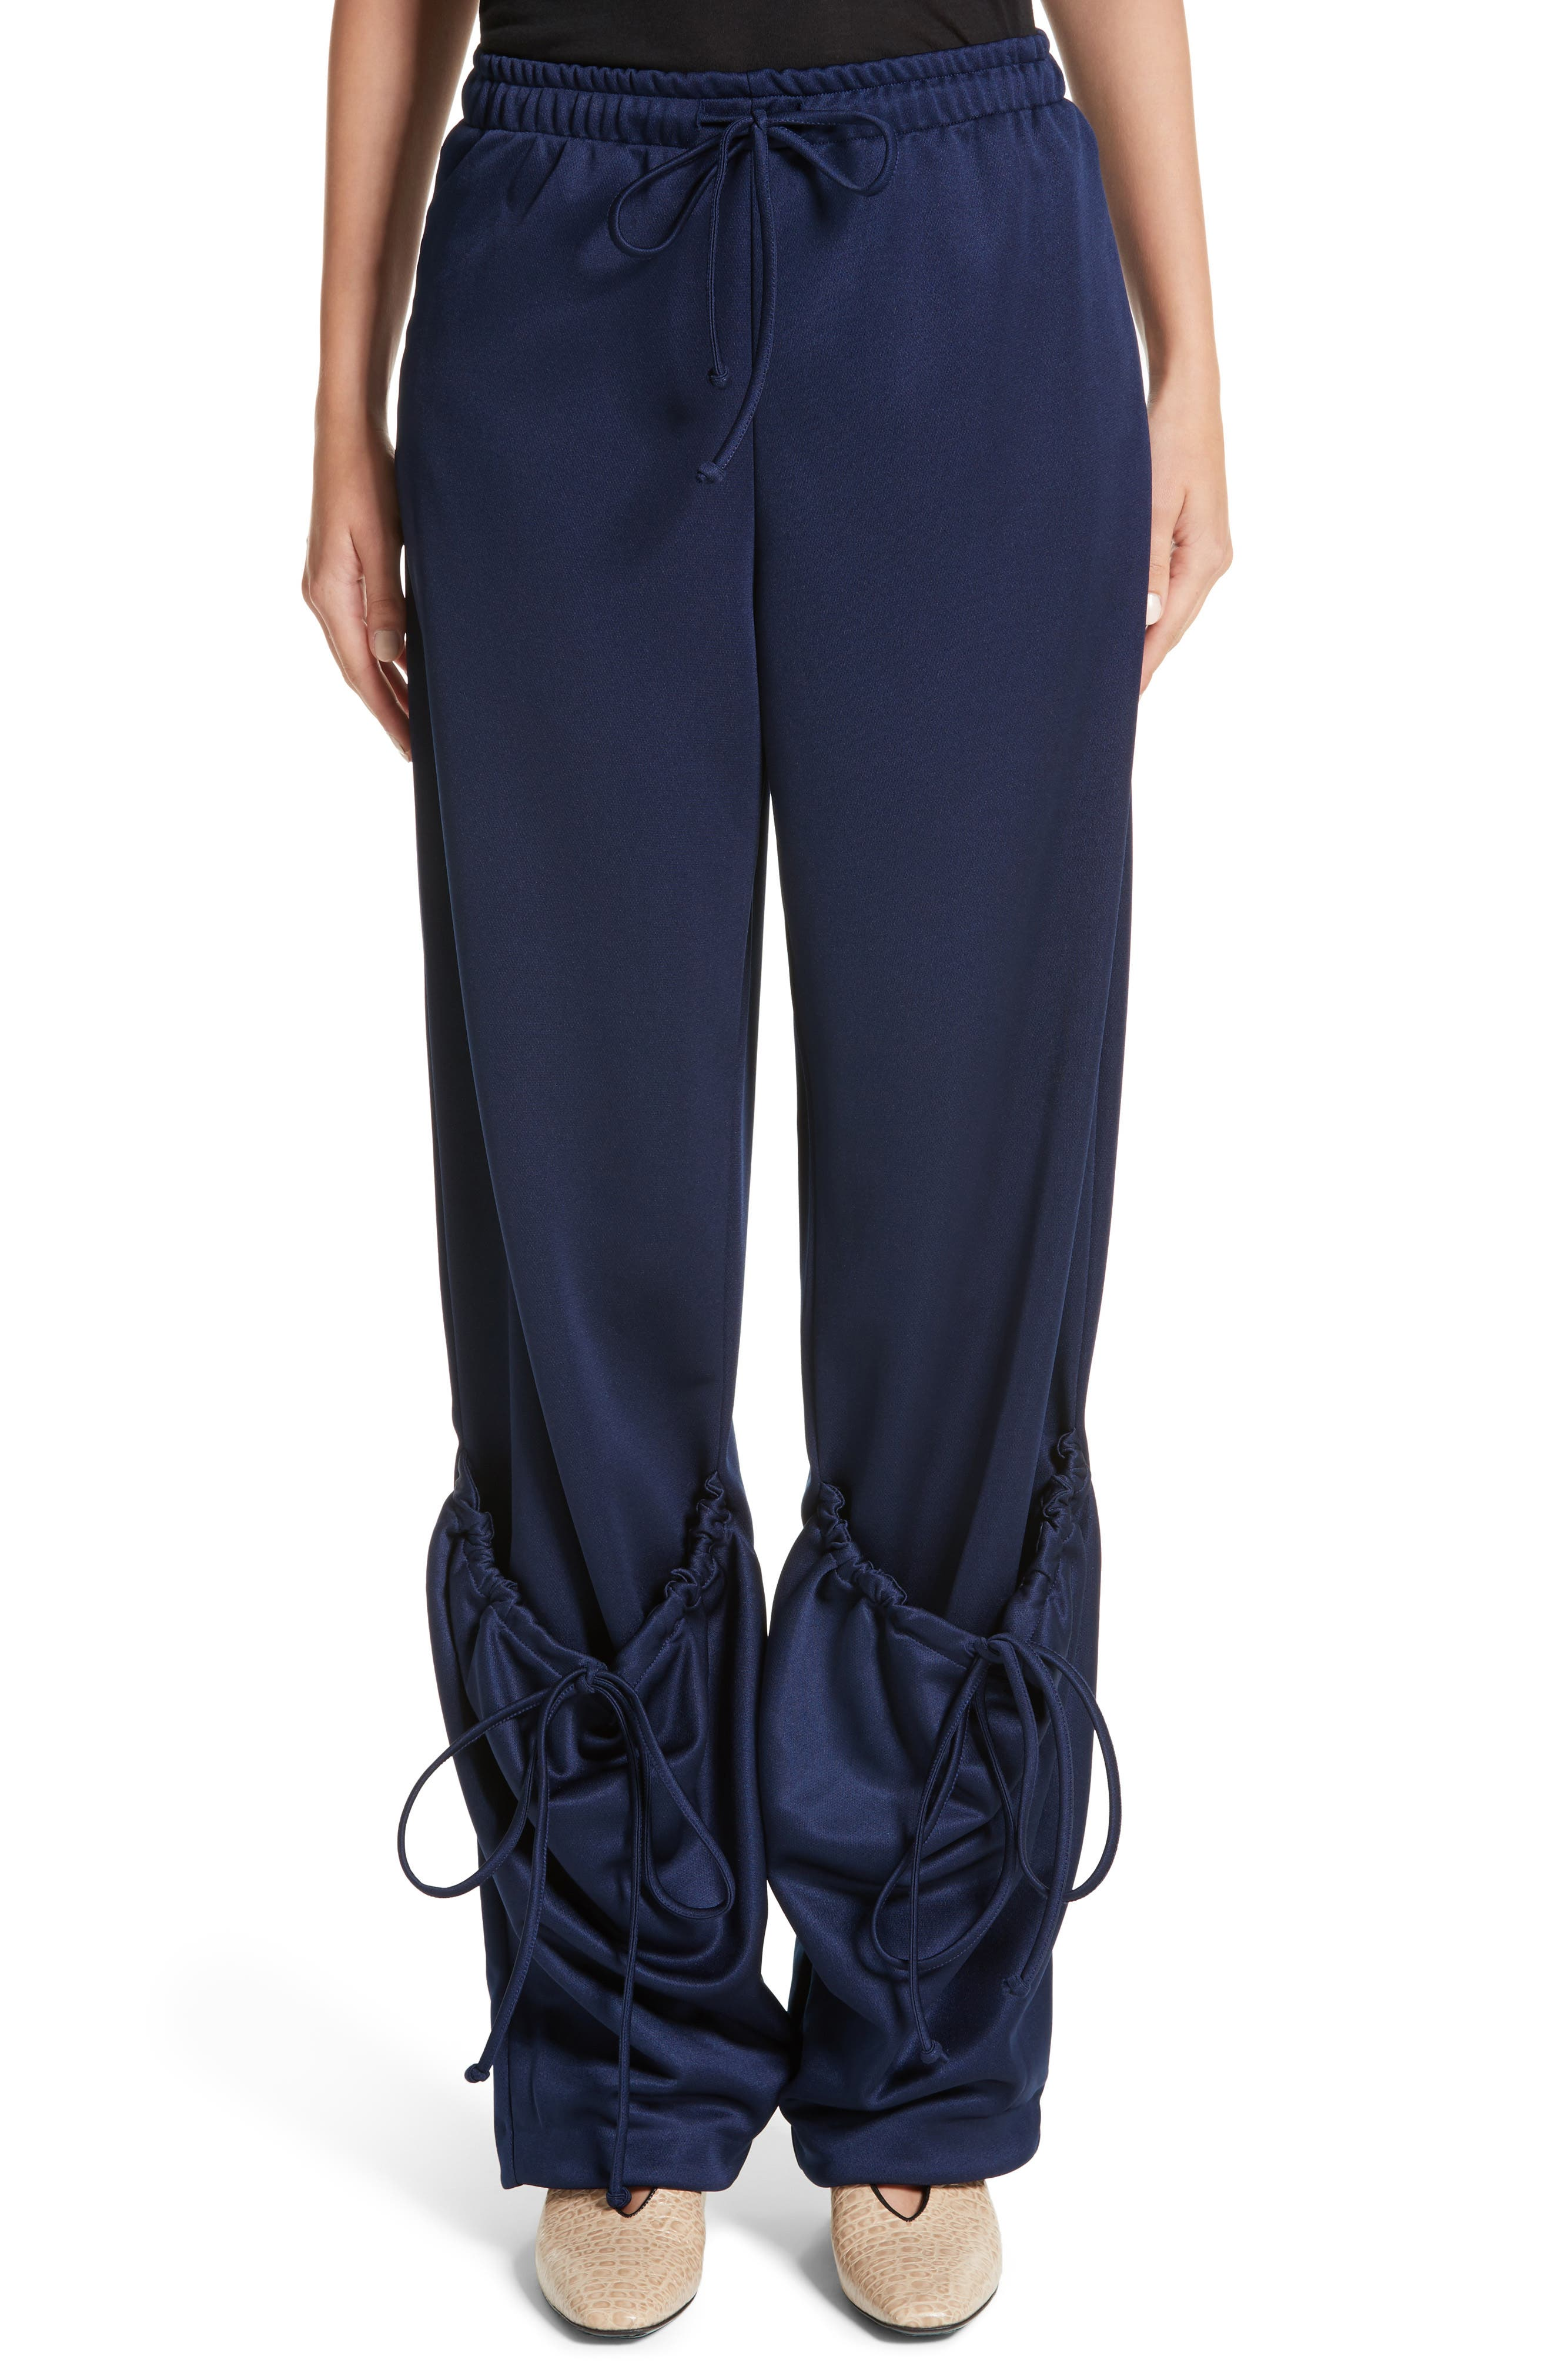 J.W.ANDERSON Jersey Pocket Hem Trousers,                             Main thumbnail 1, color,                             Midnight Blue